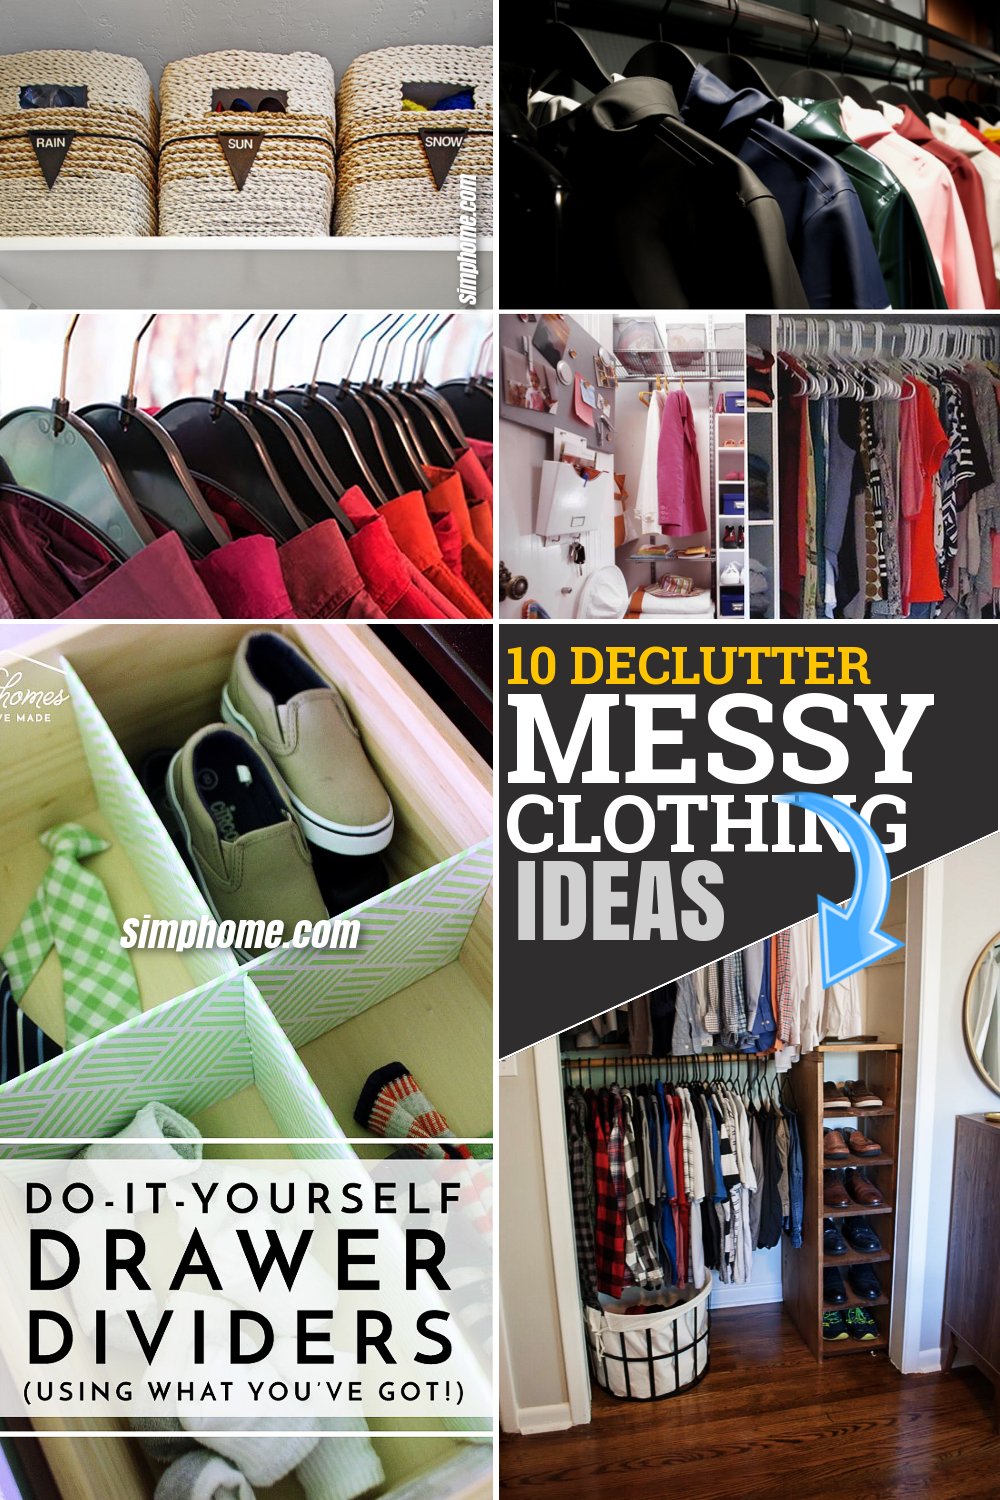 10 declutter messy closet ideas via Simphome.com Featured Pinterest Image